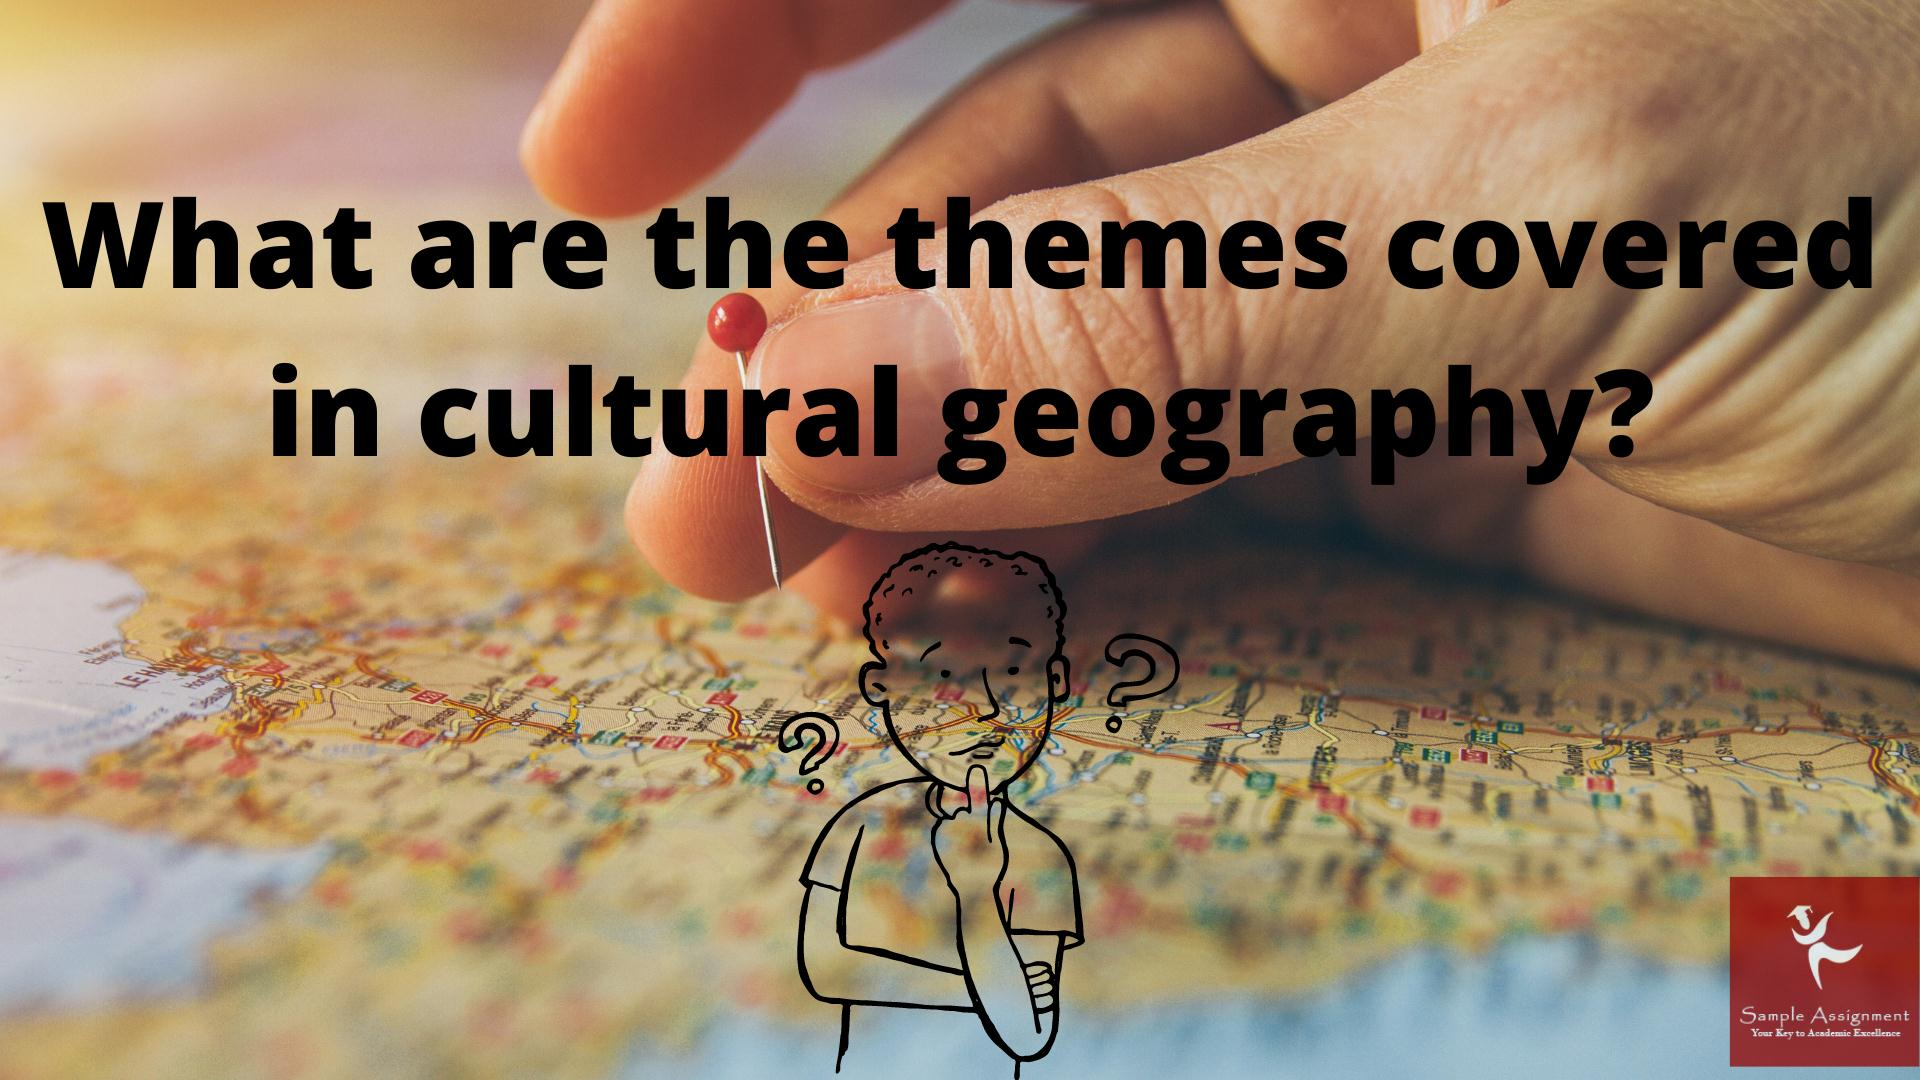 Cultural Geography Academic Assistance through Online Tutoring